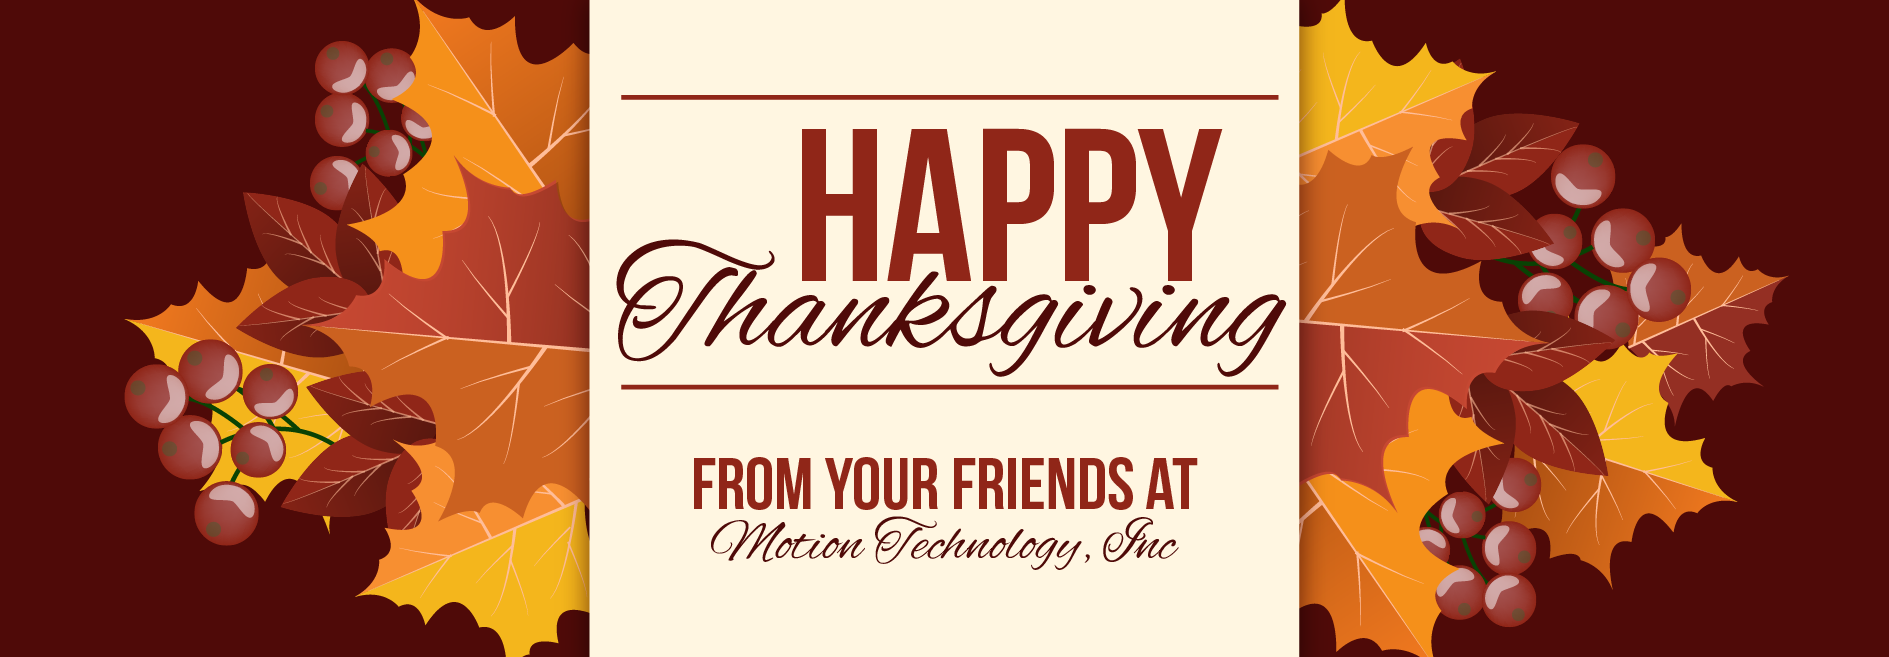 From The Team | Expressing Thanksgiving Gratitude